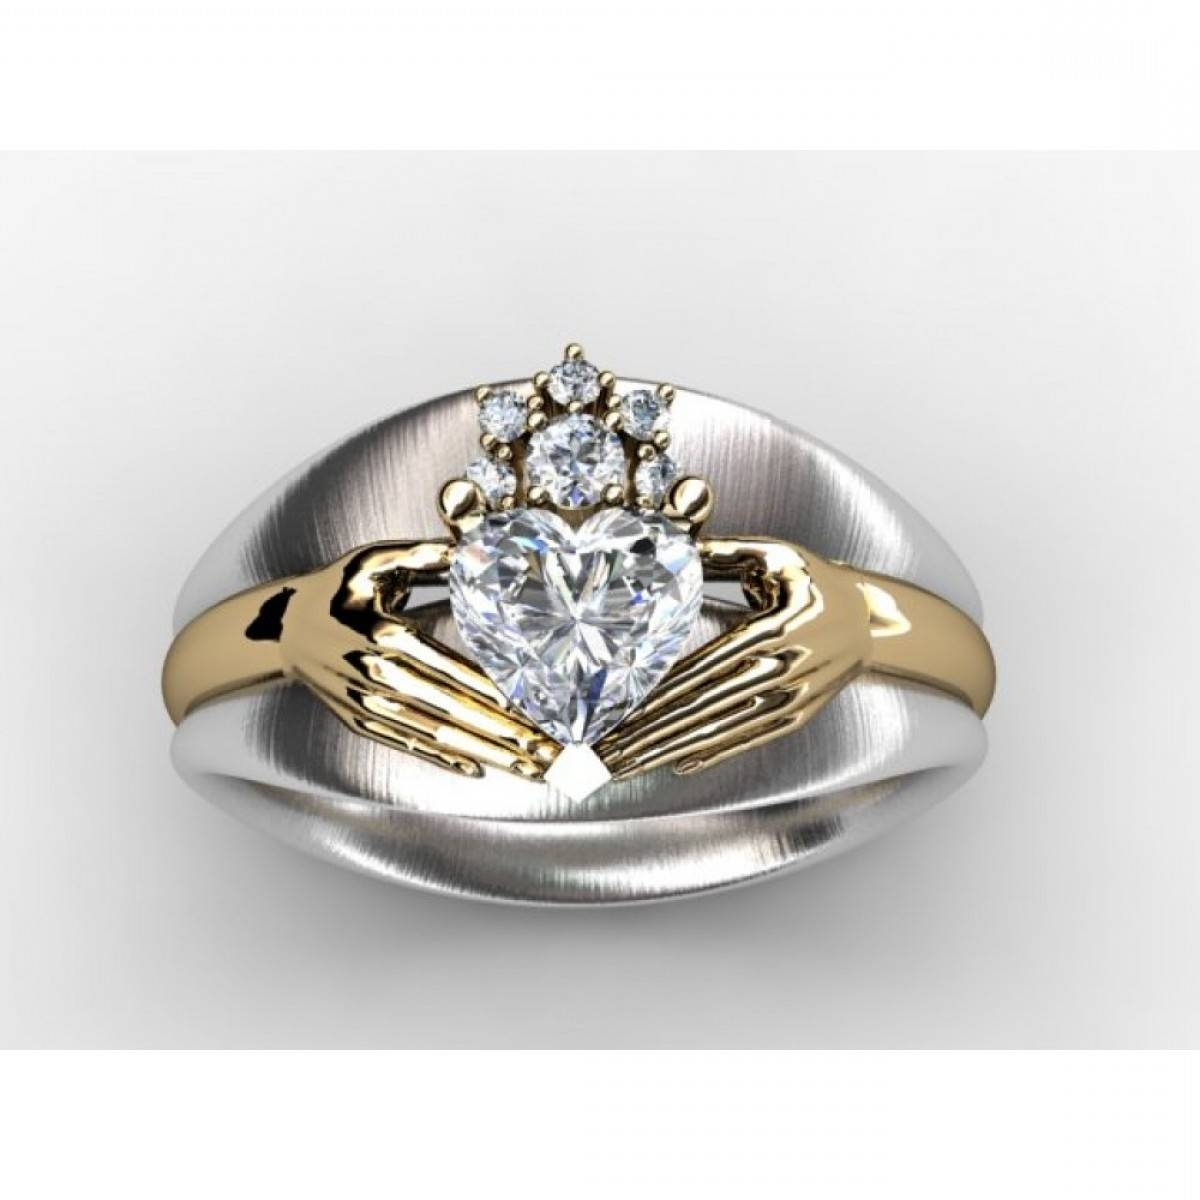 Wedding Rings : Engagement Rings Uk Gaelic Jewelry Claddagh Pertaining To Gaelic Engagement Rings (View 11 of 15)